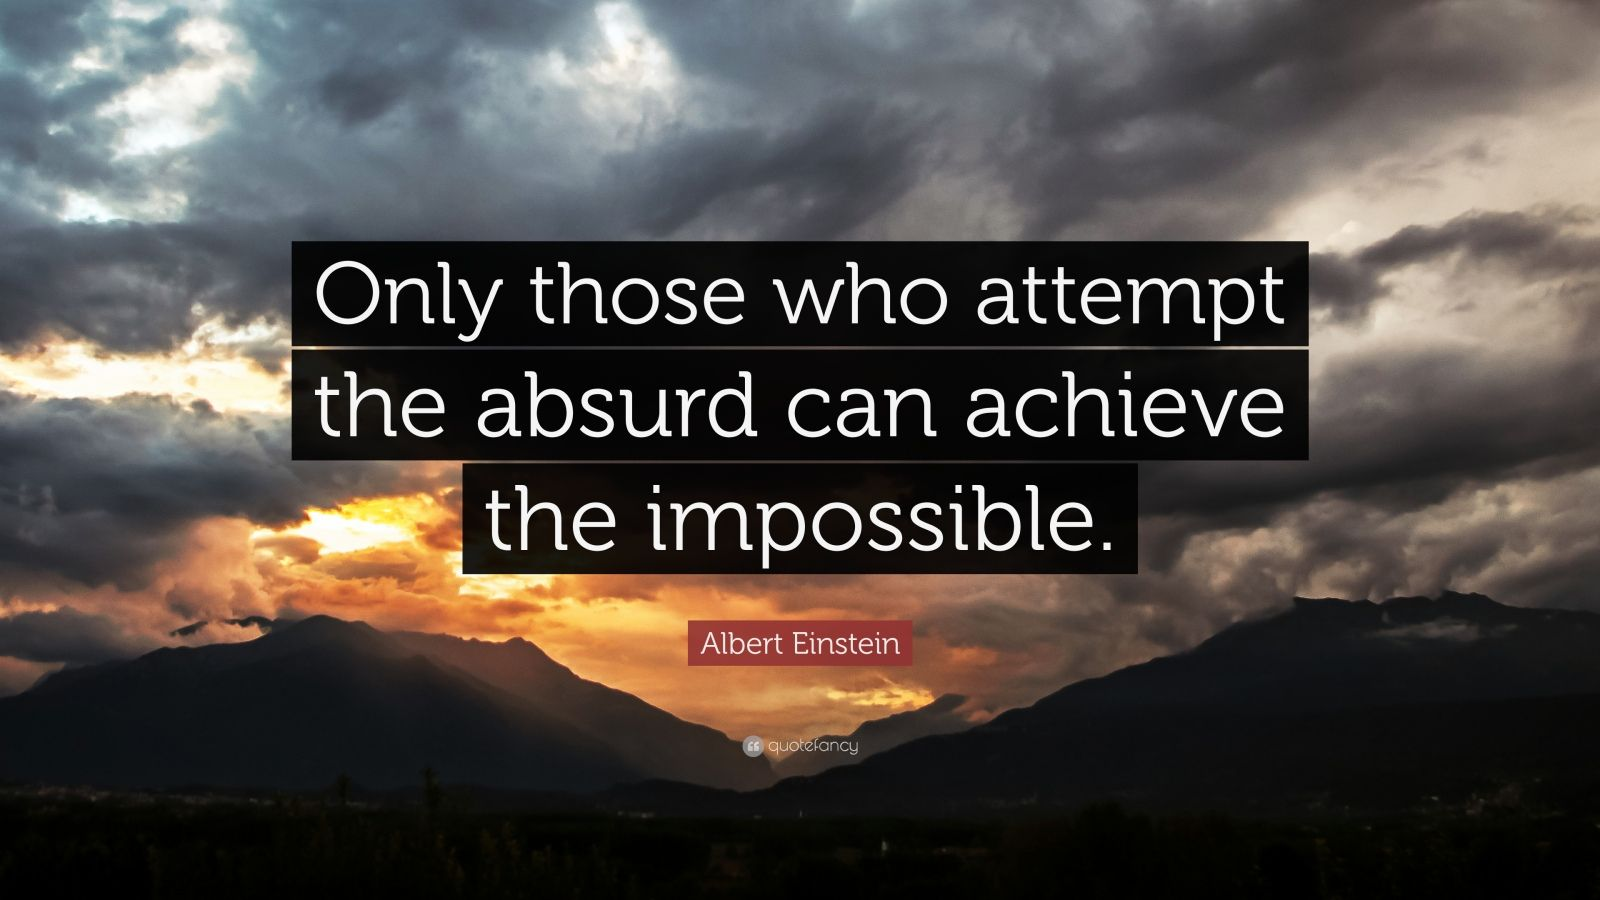 Achieve Quotes Wallpaper Albert Einstein Quote Only Those Who Attempt The Absurd